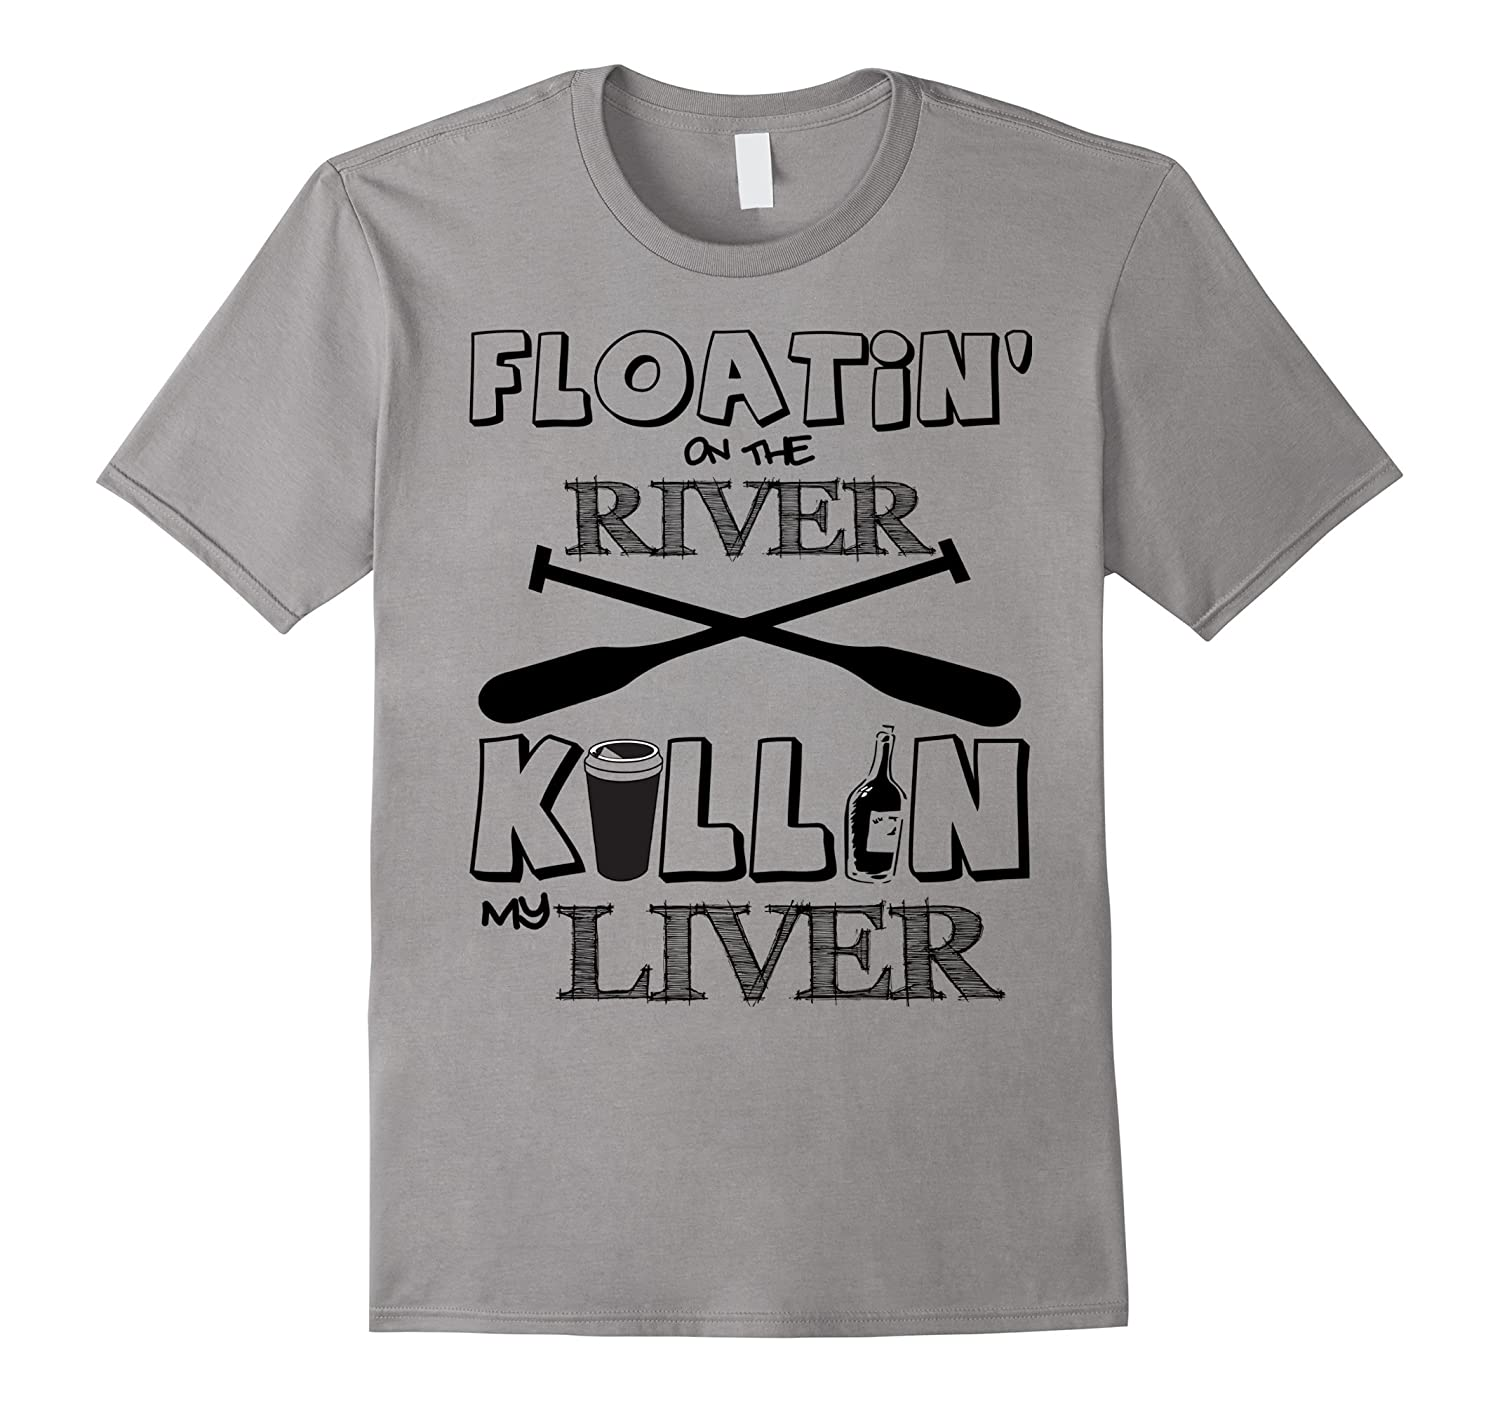 Floating On The River Killin My Liver Mens Shirt Funny-CD